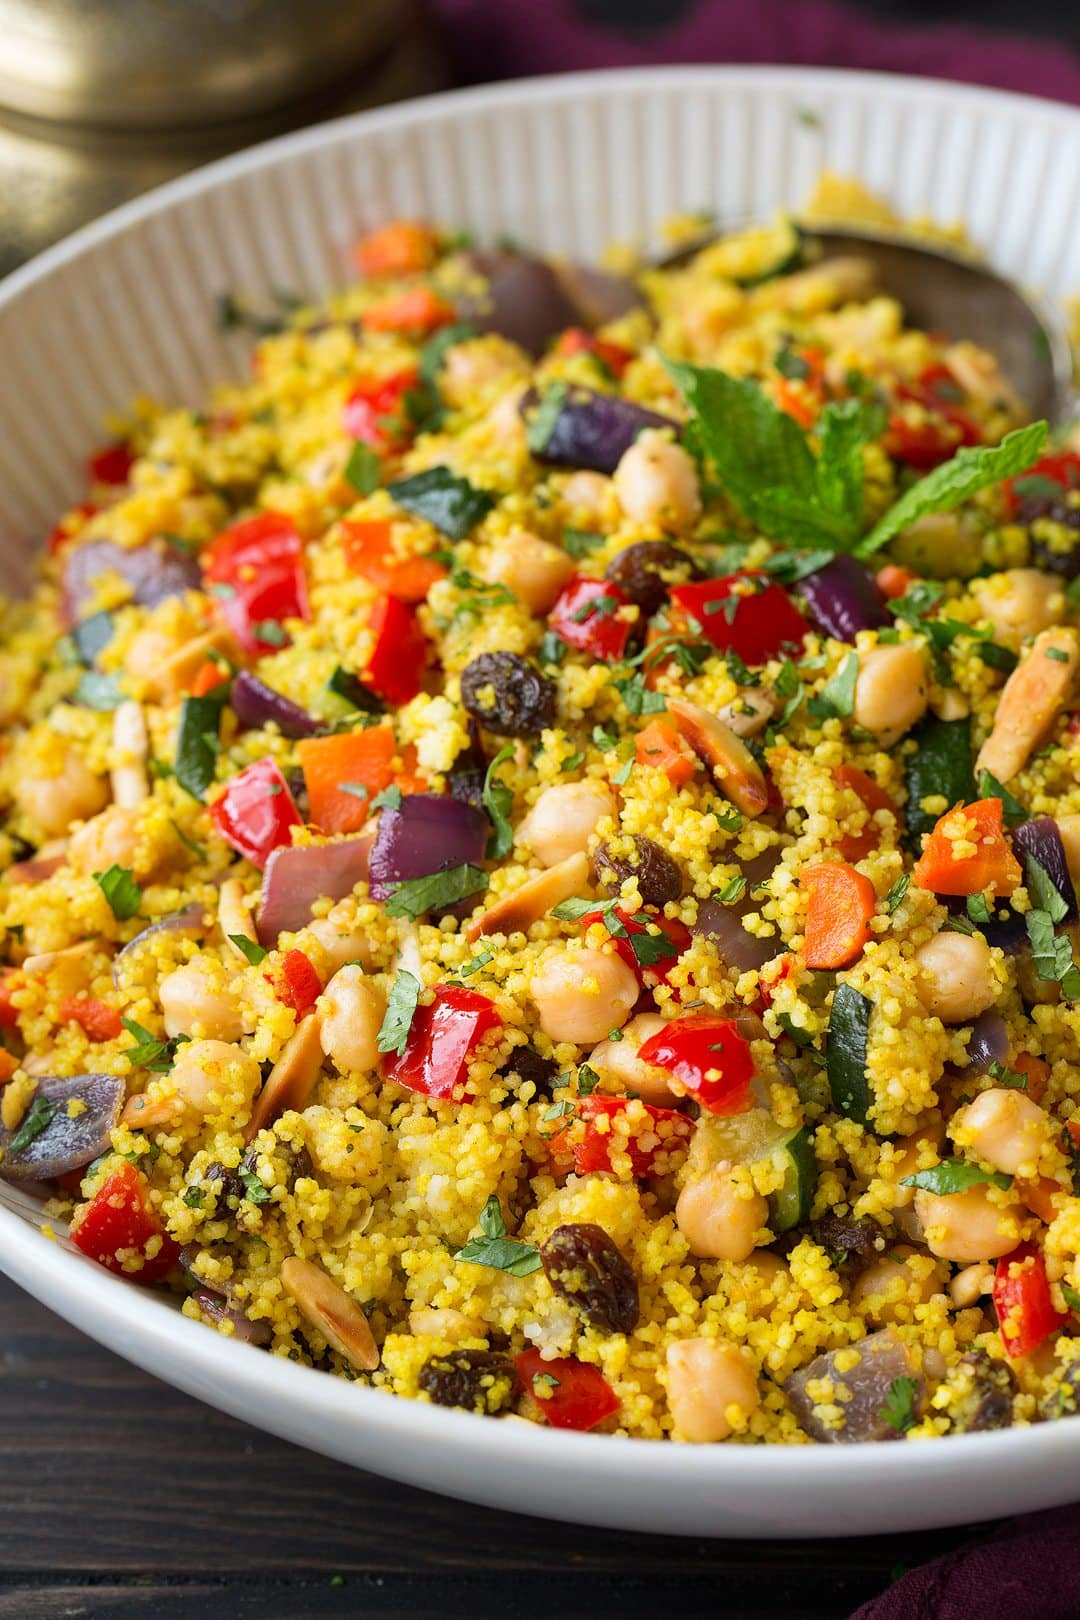 Moroccan Couscous With Roasted Vegetables